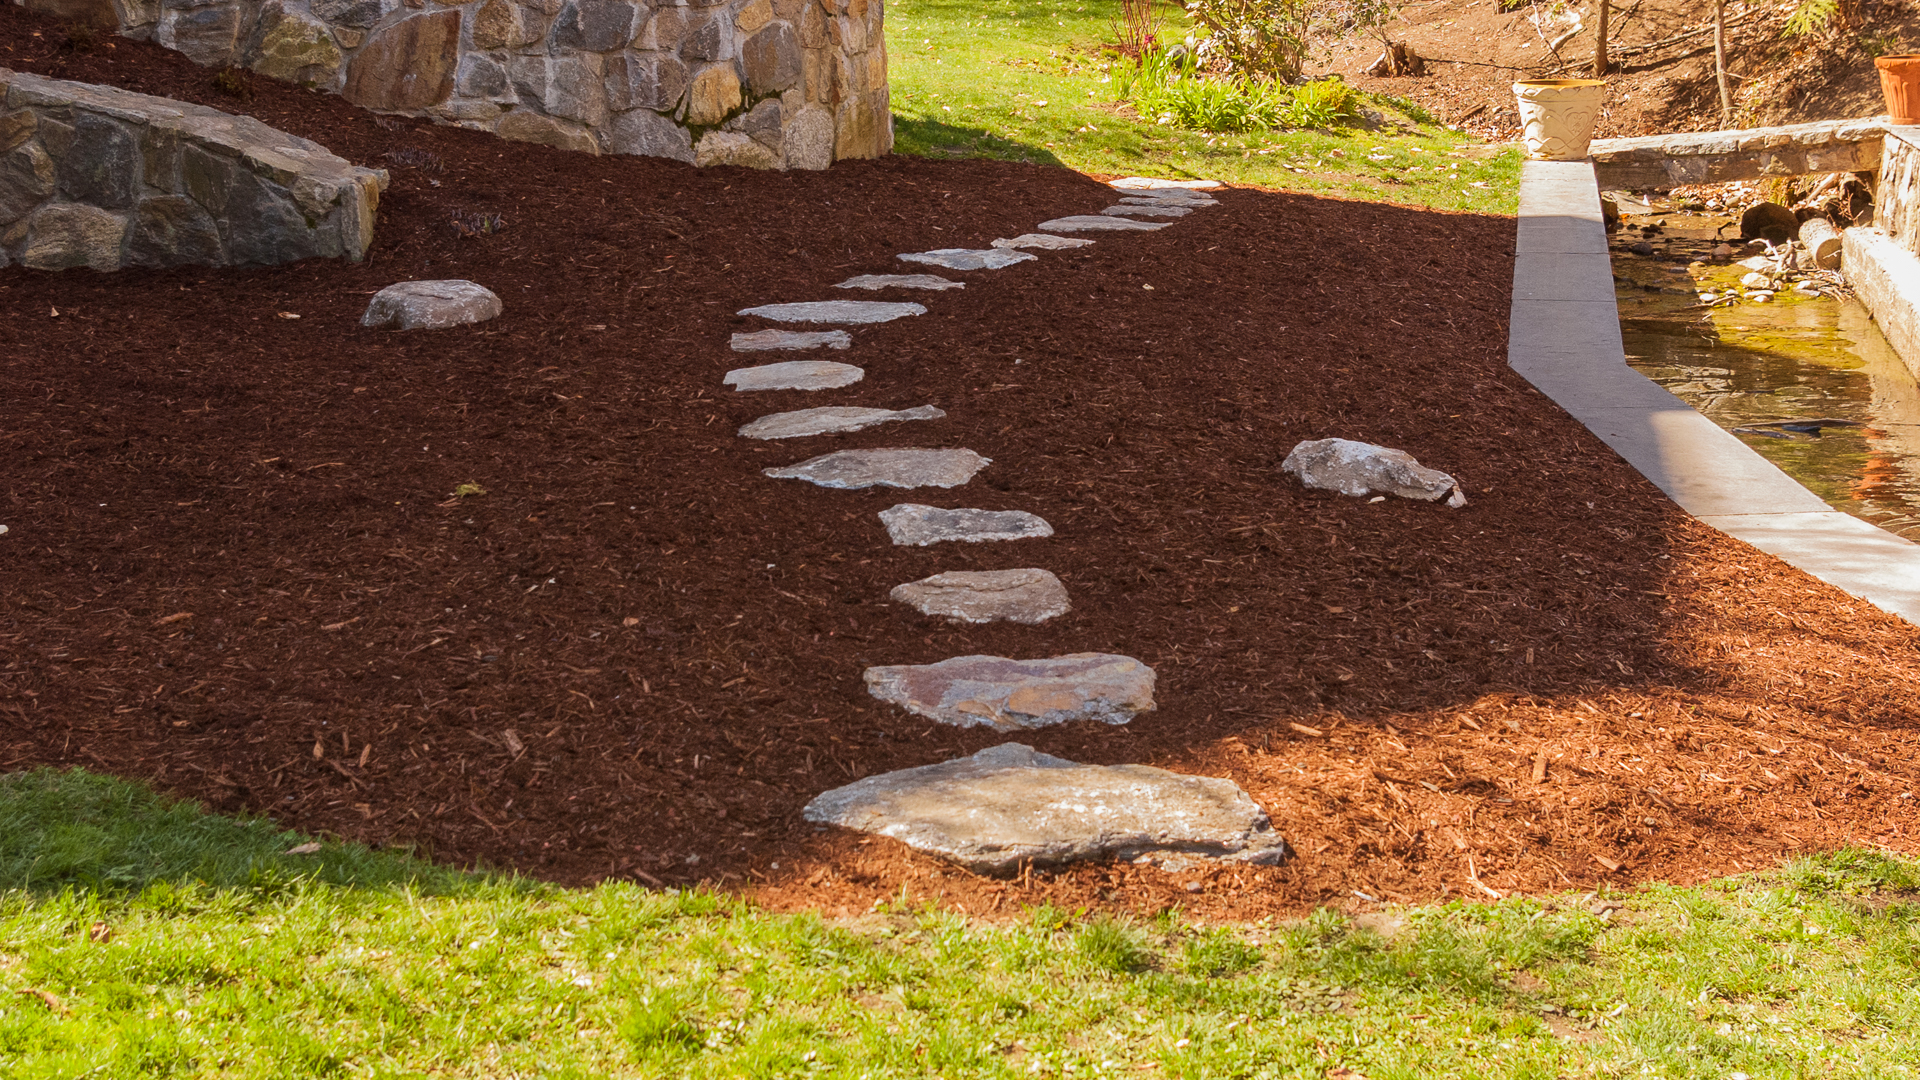 How to create a curved stepping stone path land designs for Home designs unlimited llc